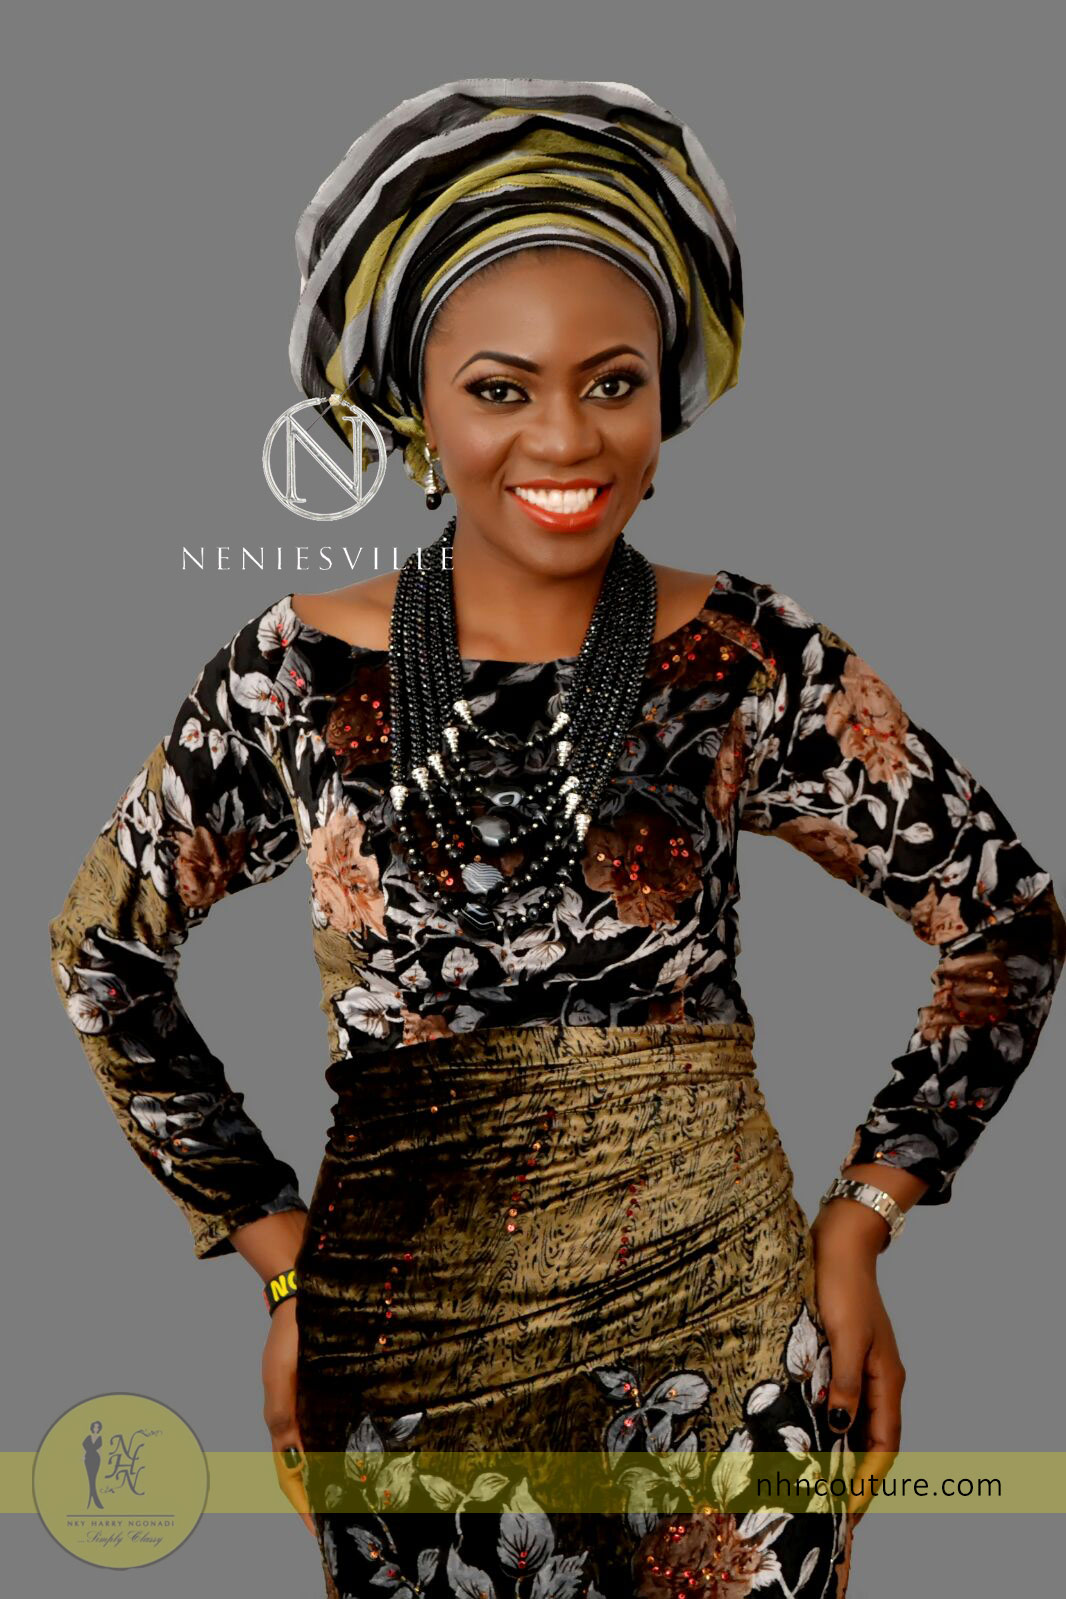 Neniesville-Jewelry_Nigerian-Attire-by-NHN-Couture_5